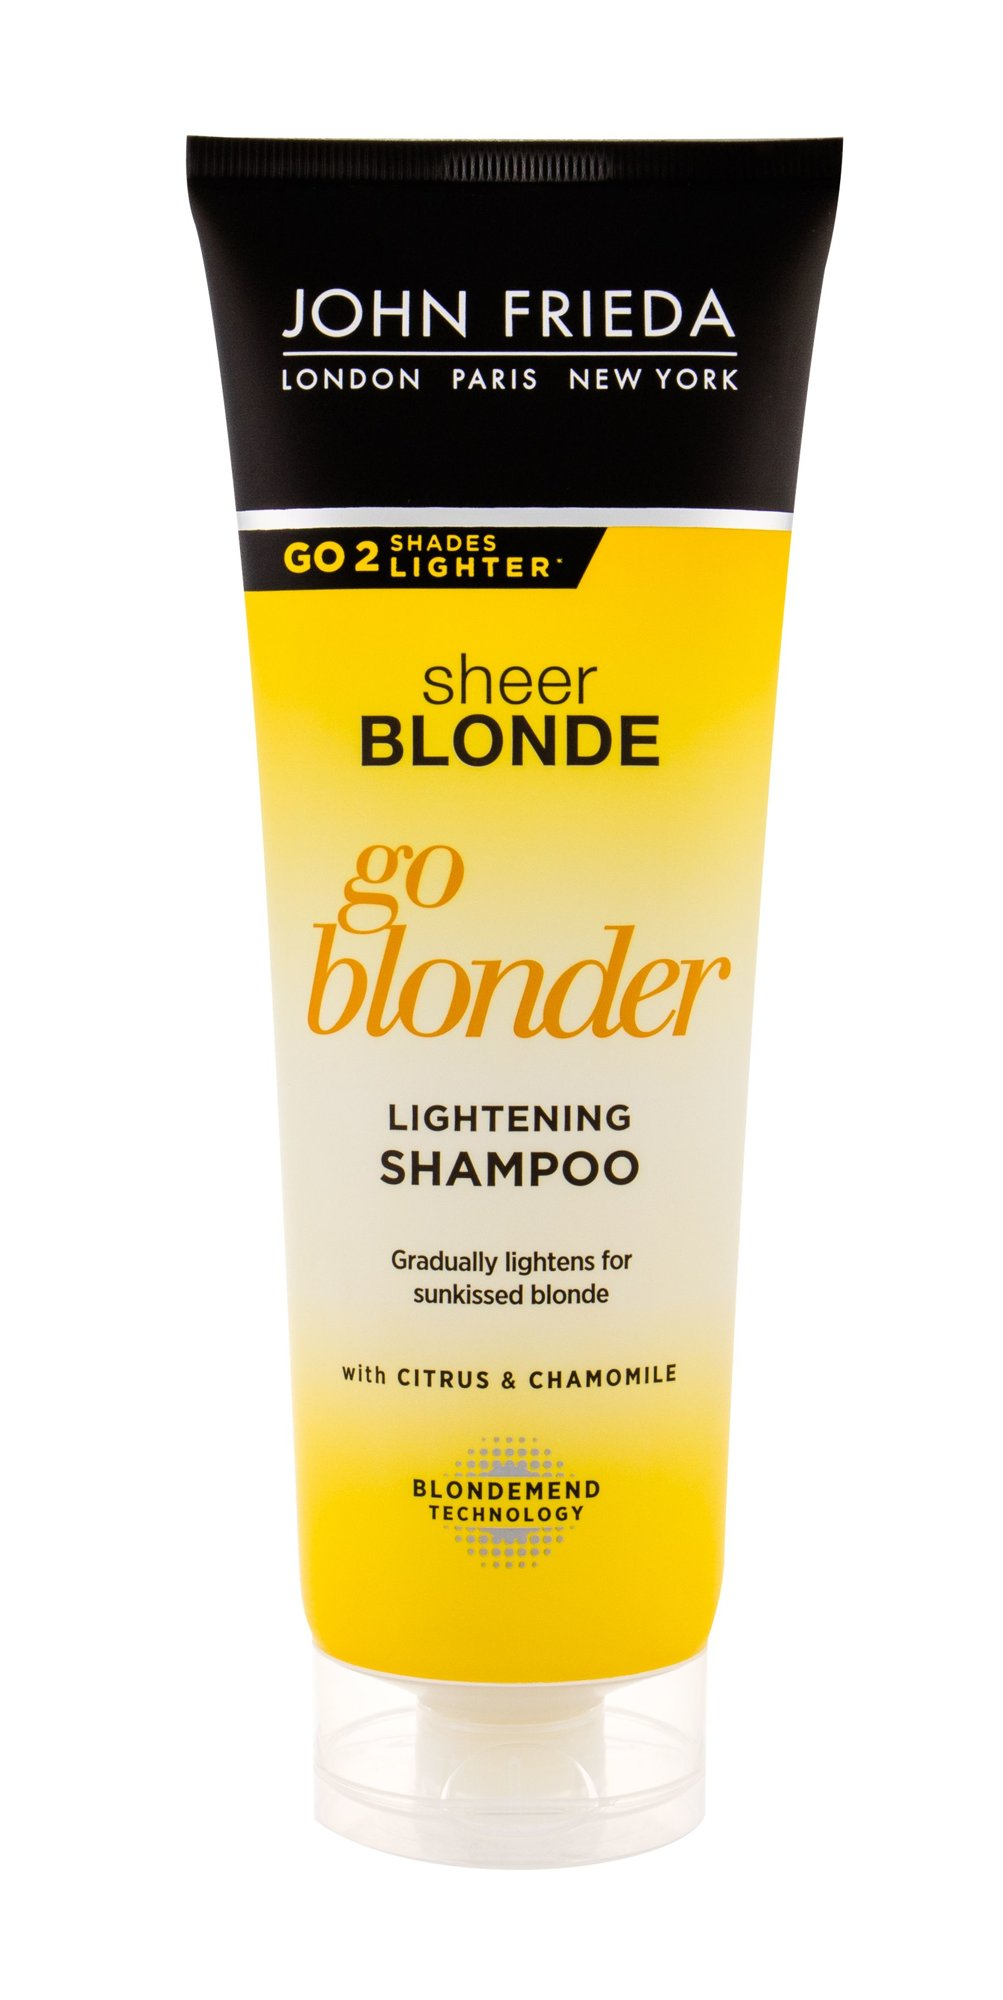 John Frieda Sheer Blonde Shampoo 250ml  Go Blonder